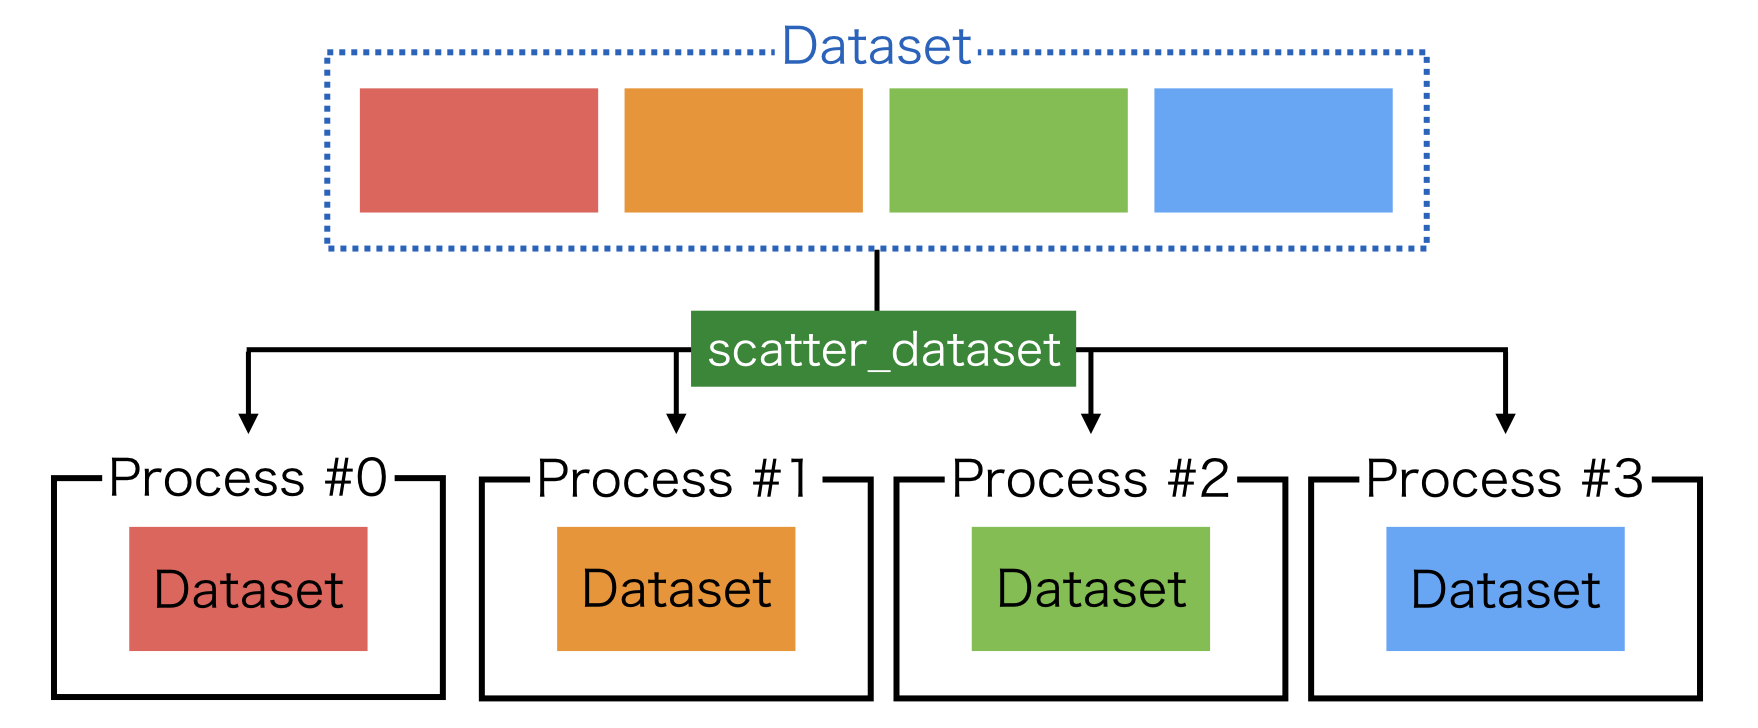 Model Parallel on ChainerMN — Chainer 6 3 0 documentation